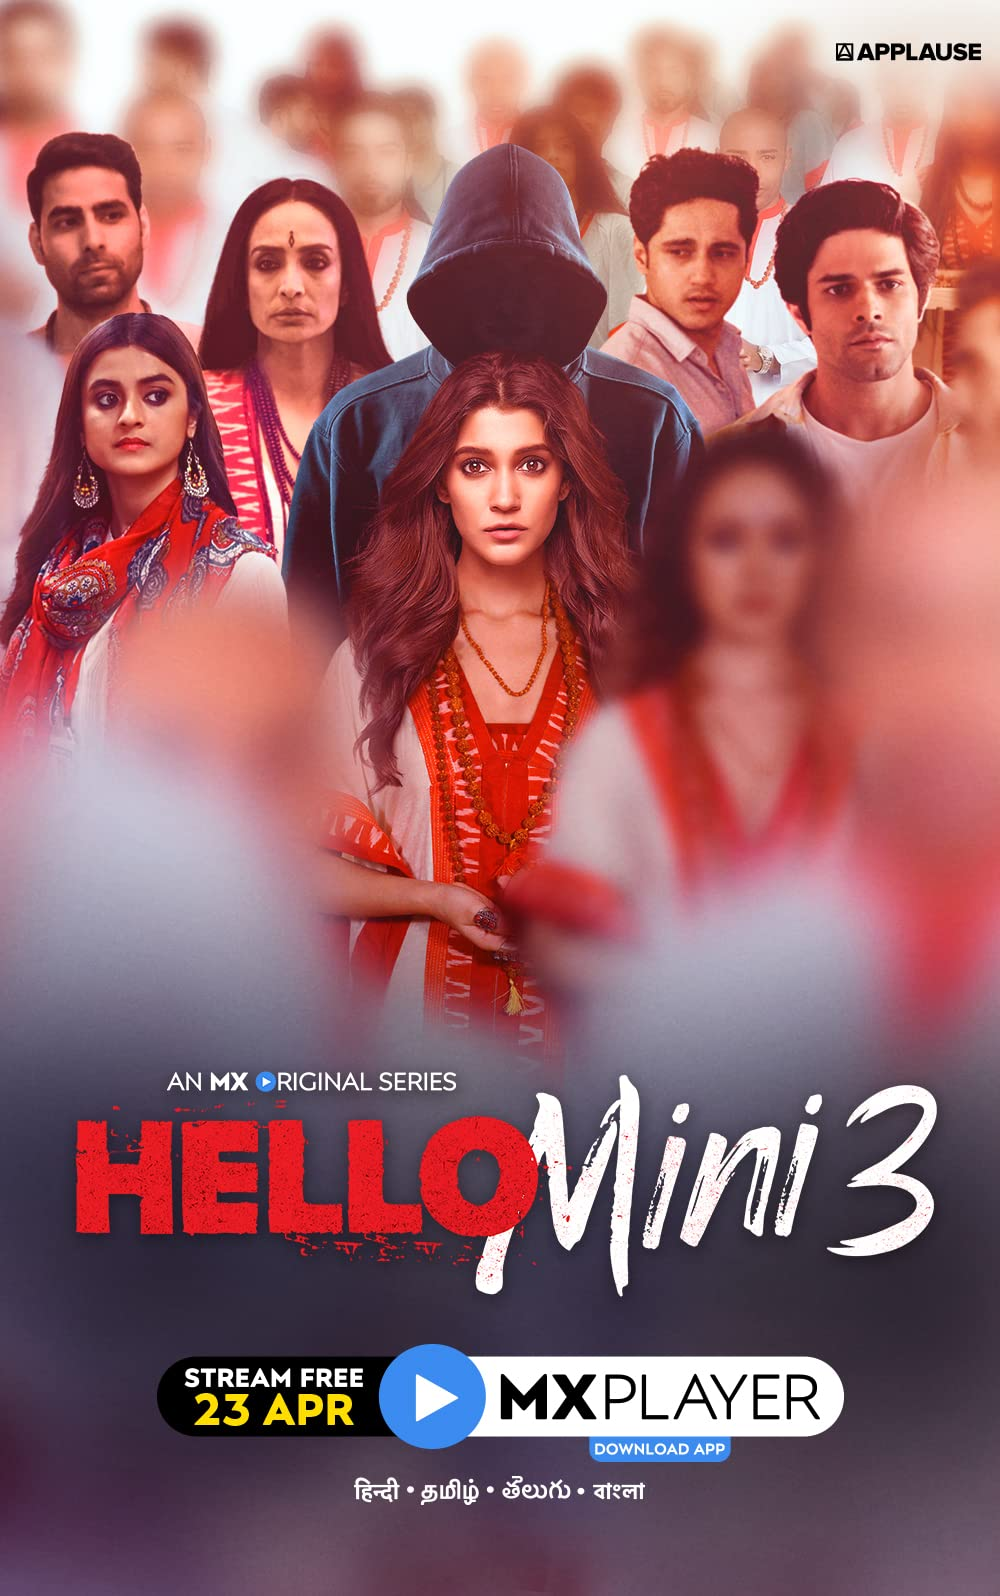 18+ Hello Mini 3 2021 S03 Hindi MX Original Complete Web Series 1080p HDRip 3.5GB Download